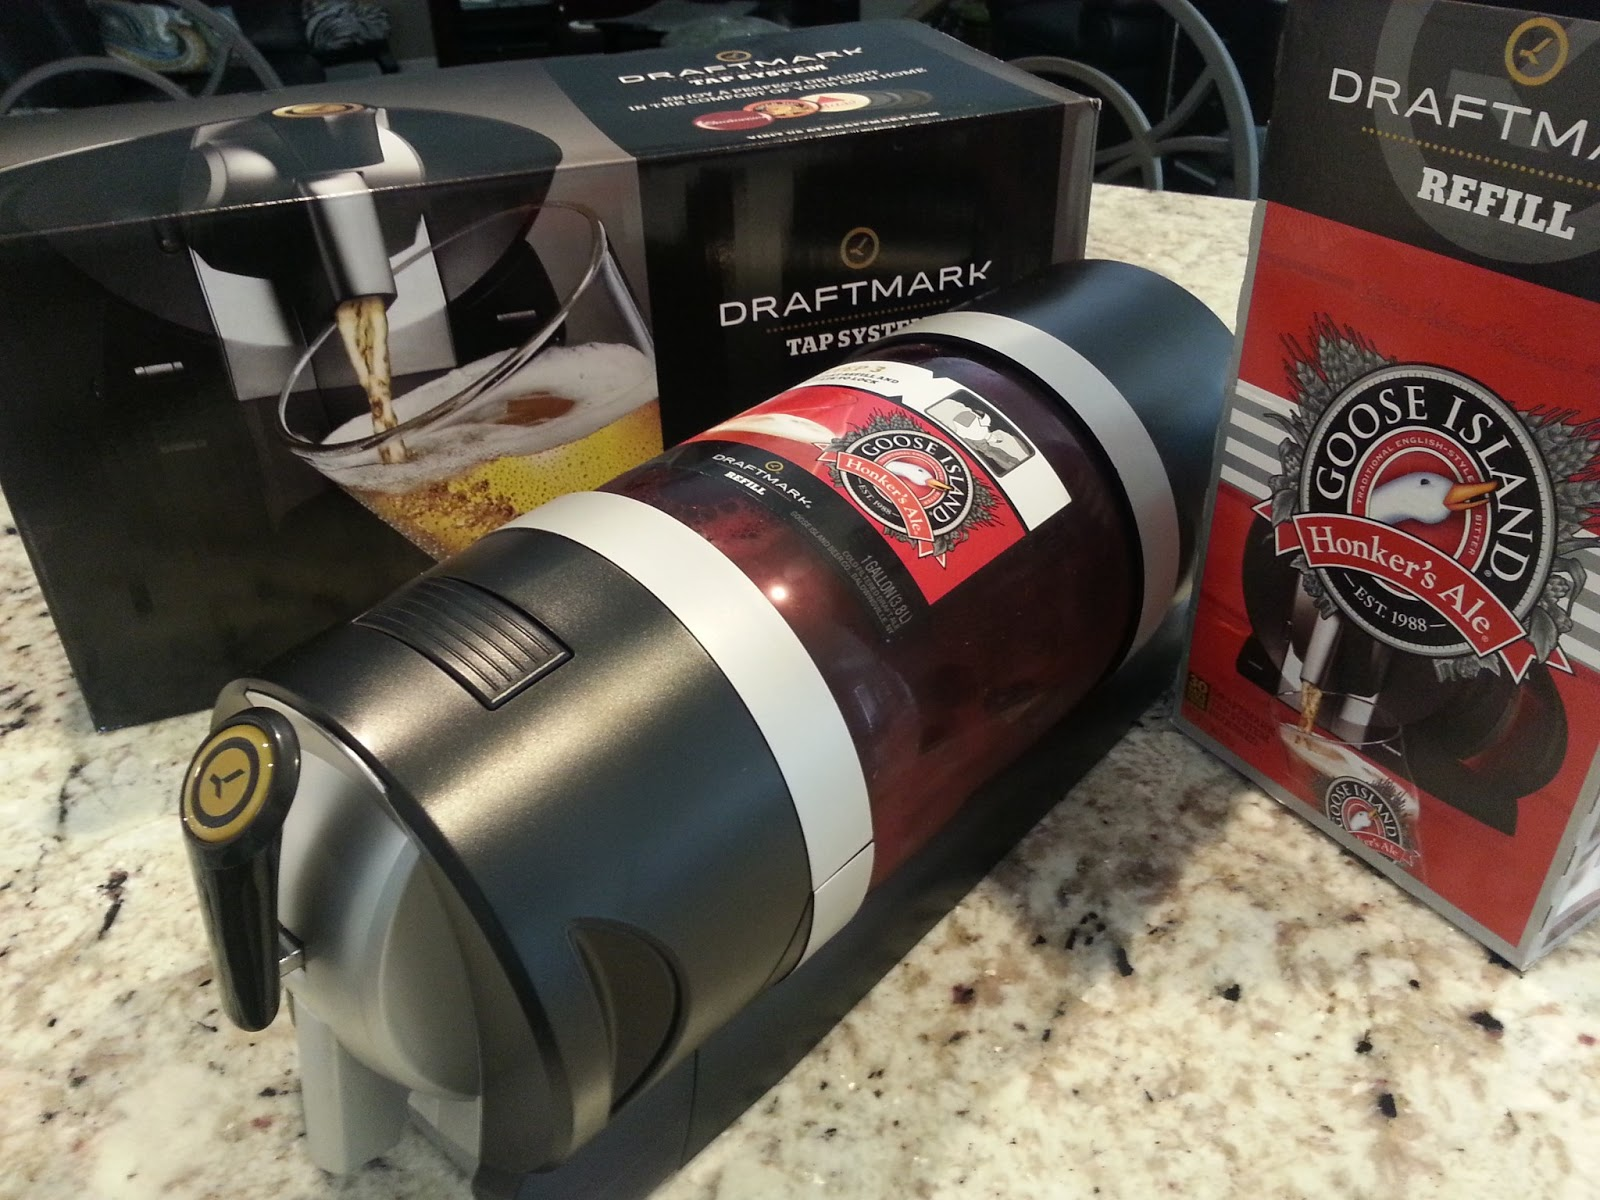 Beer tap systems for home - Draftmark In Home Draft Beer System